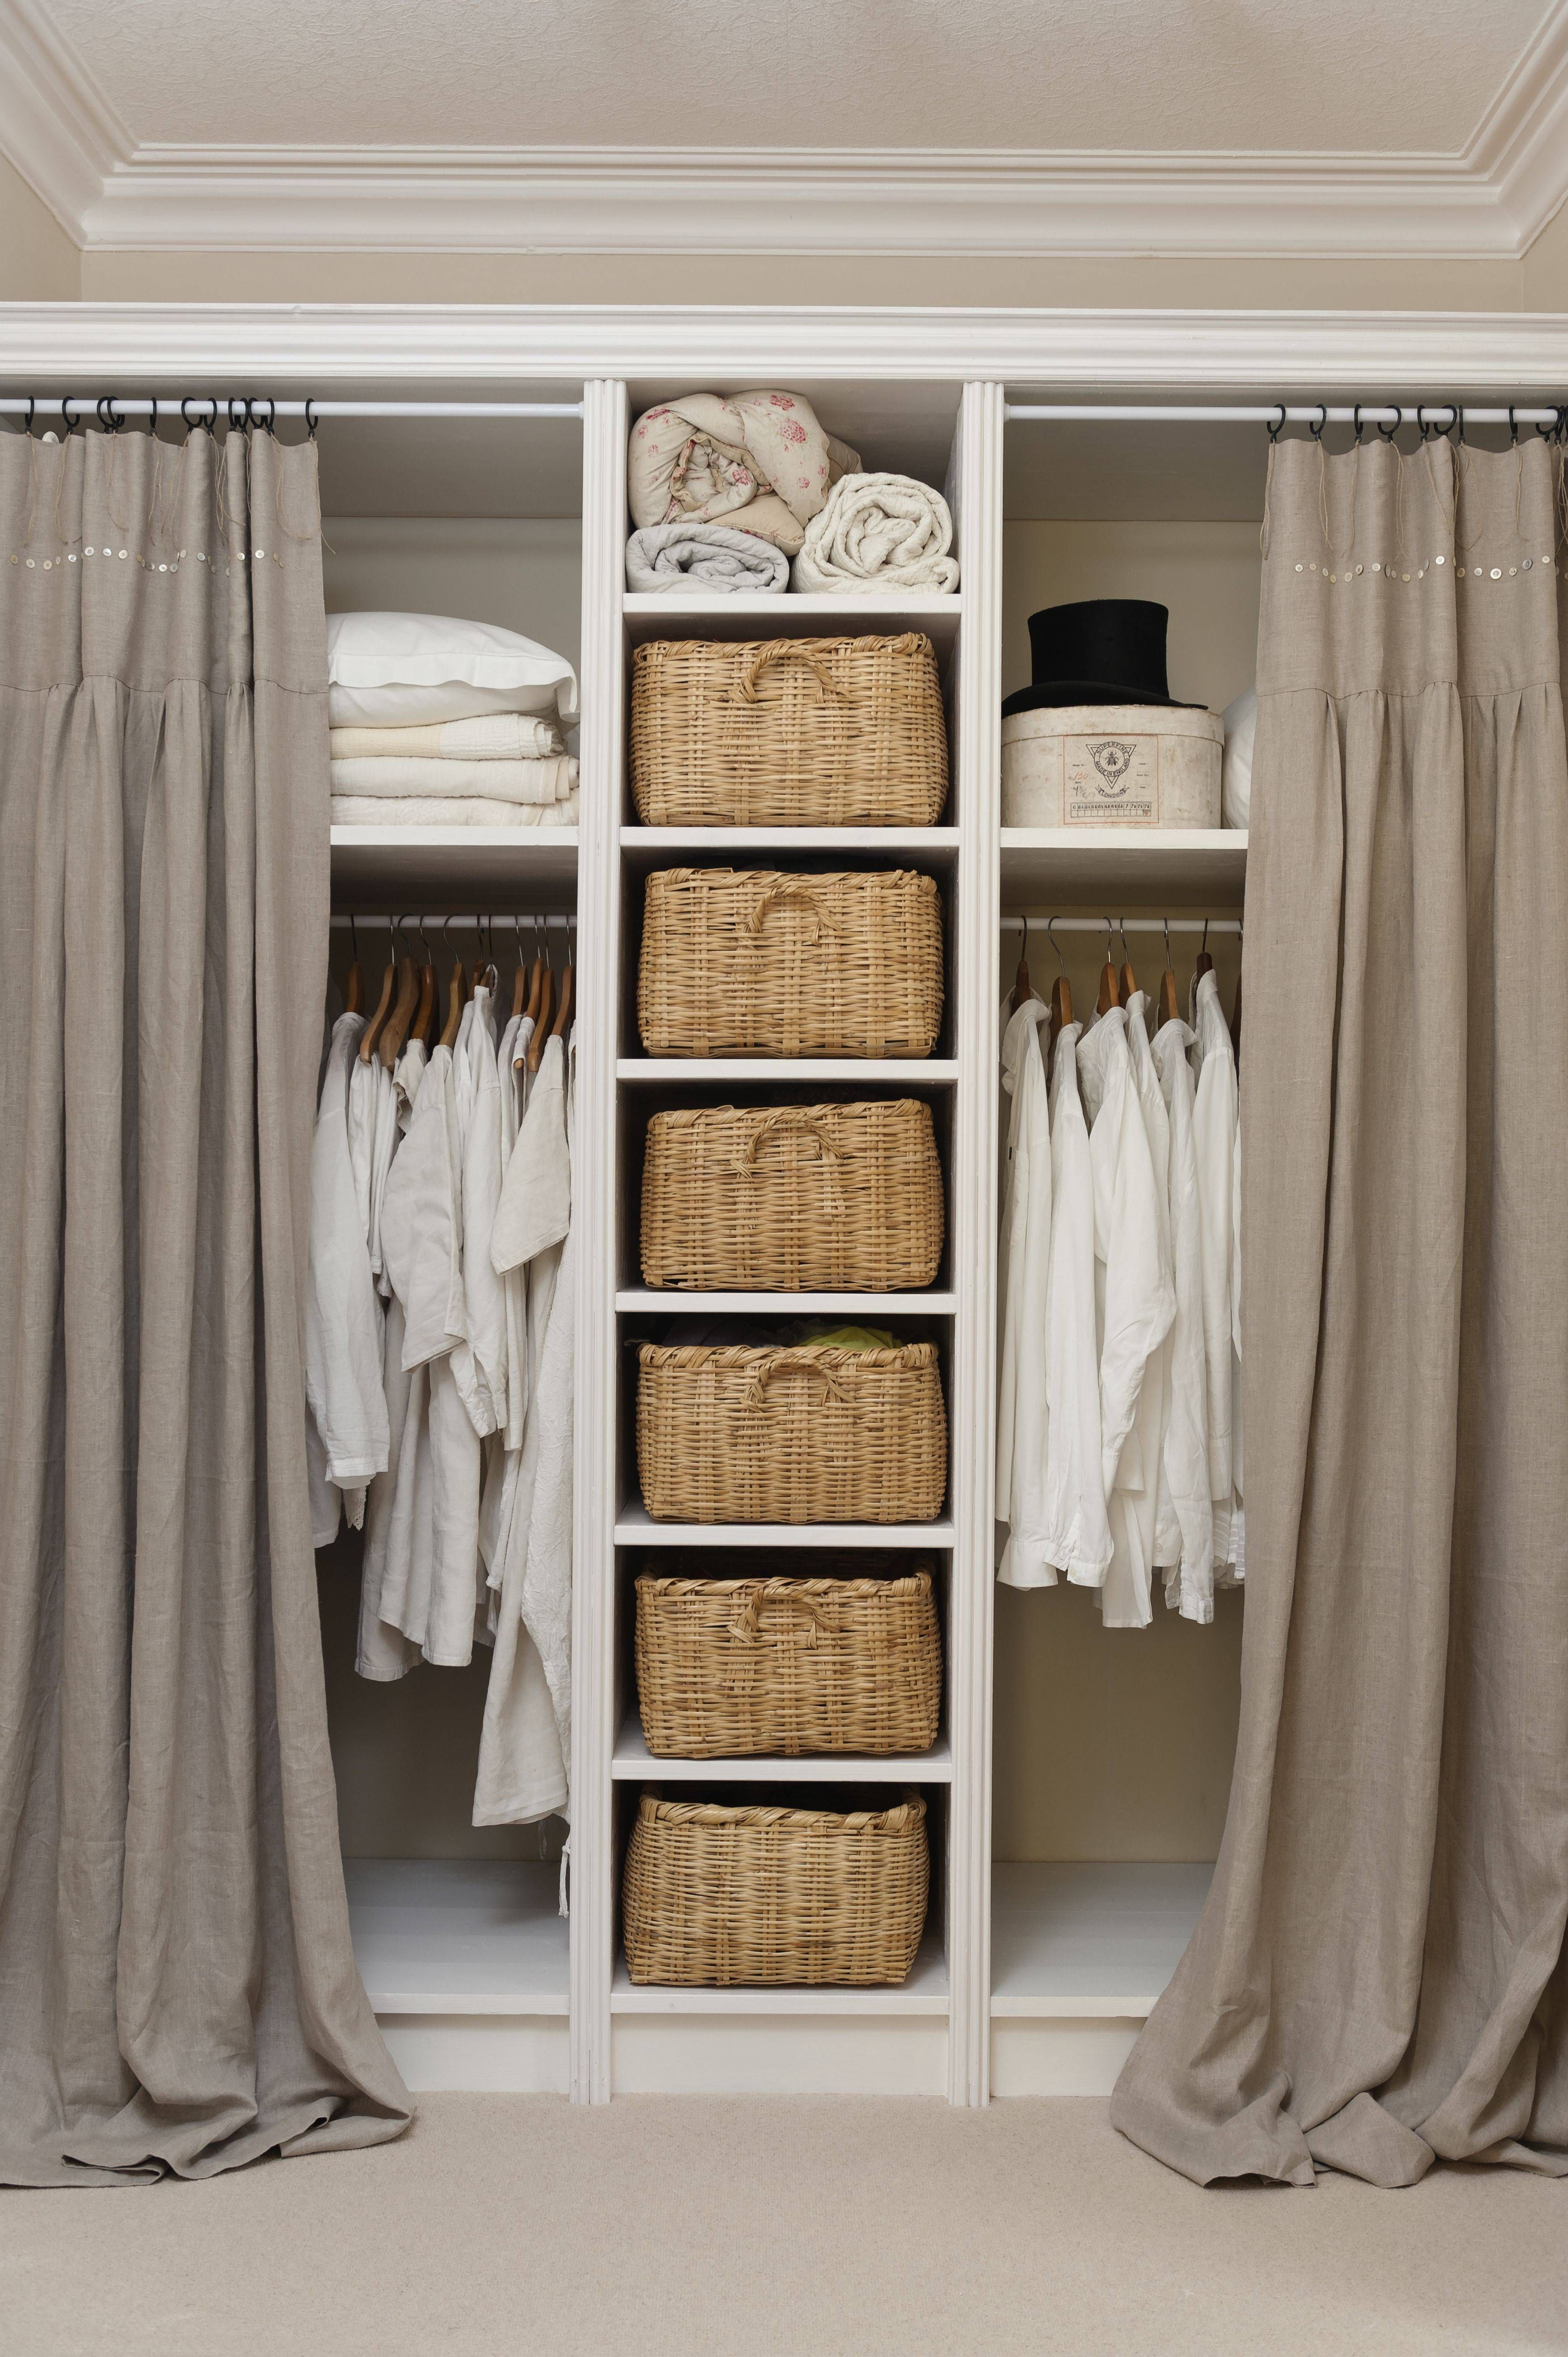 Bedroom Without Closet Options And Alternatives Small Closet Space Bedroom Organization Closet